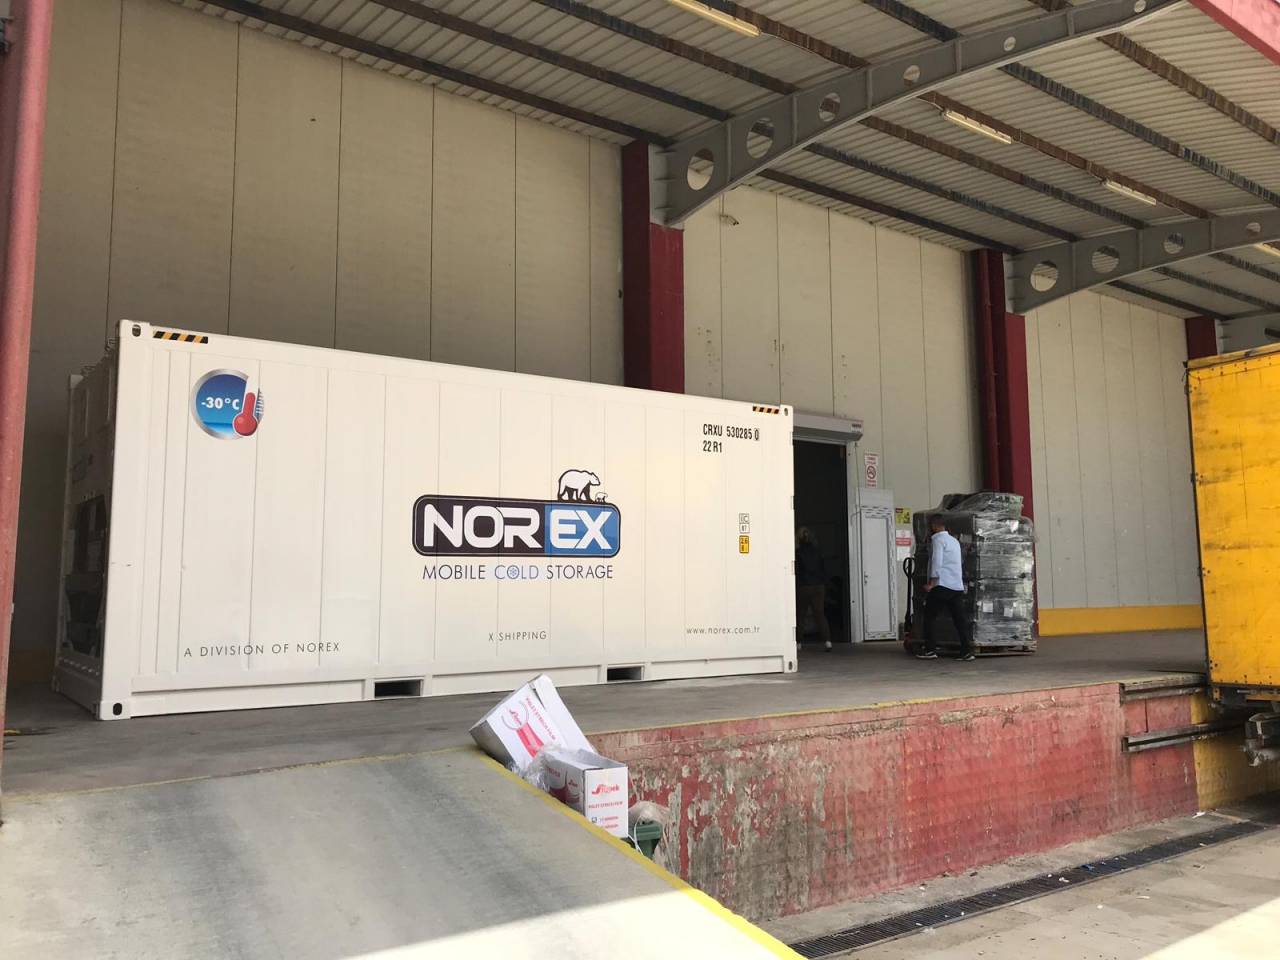 Fruit Exporter Firm Rented Norex Mobile Cold Storage Container for Fumigation